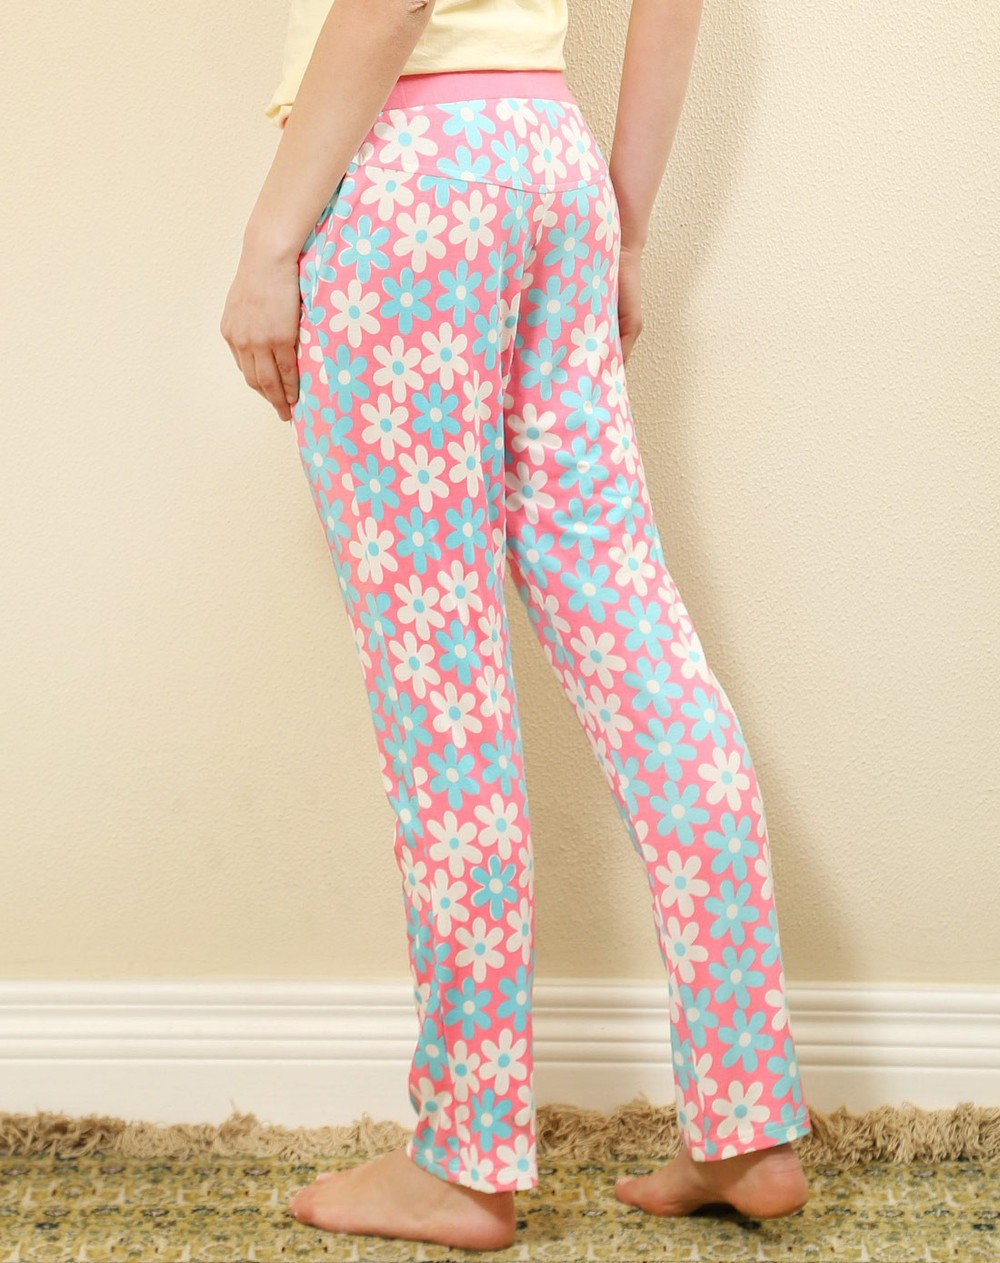 Pink print white blue pattern flower pants women casual pajamas fashion lady casual pajamas